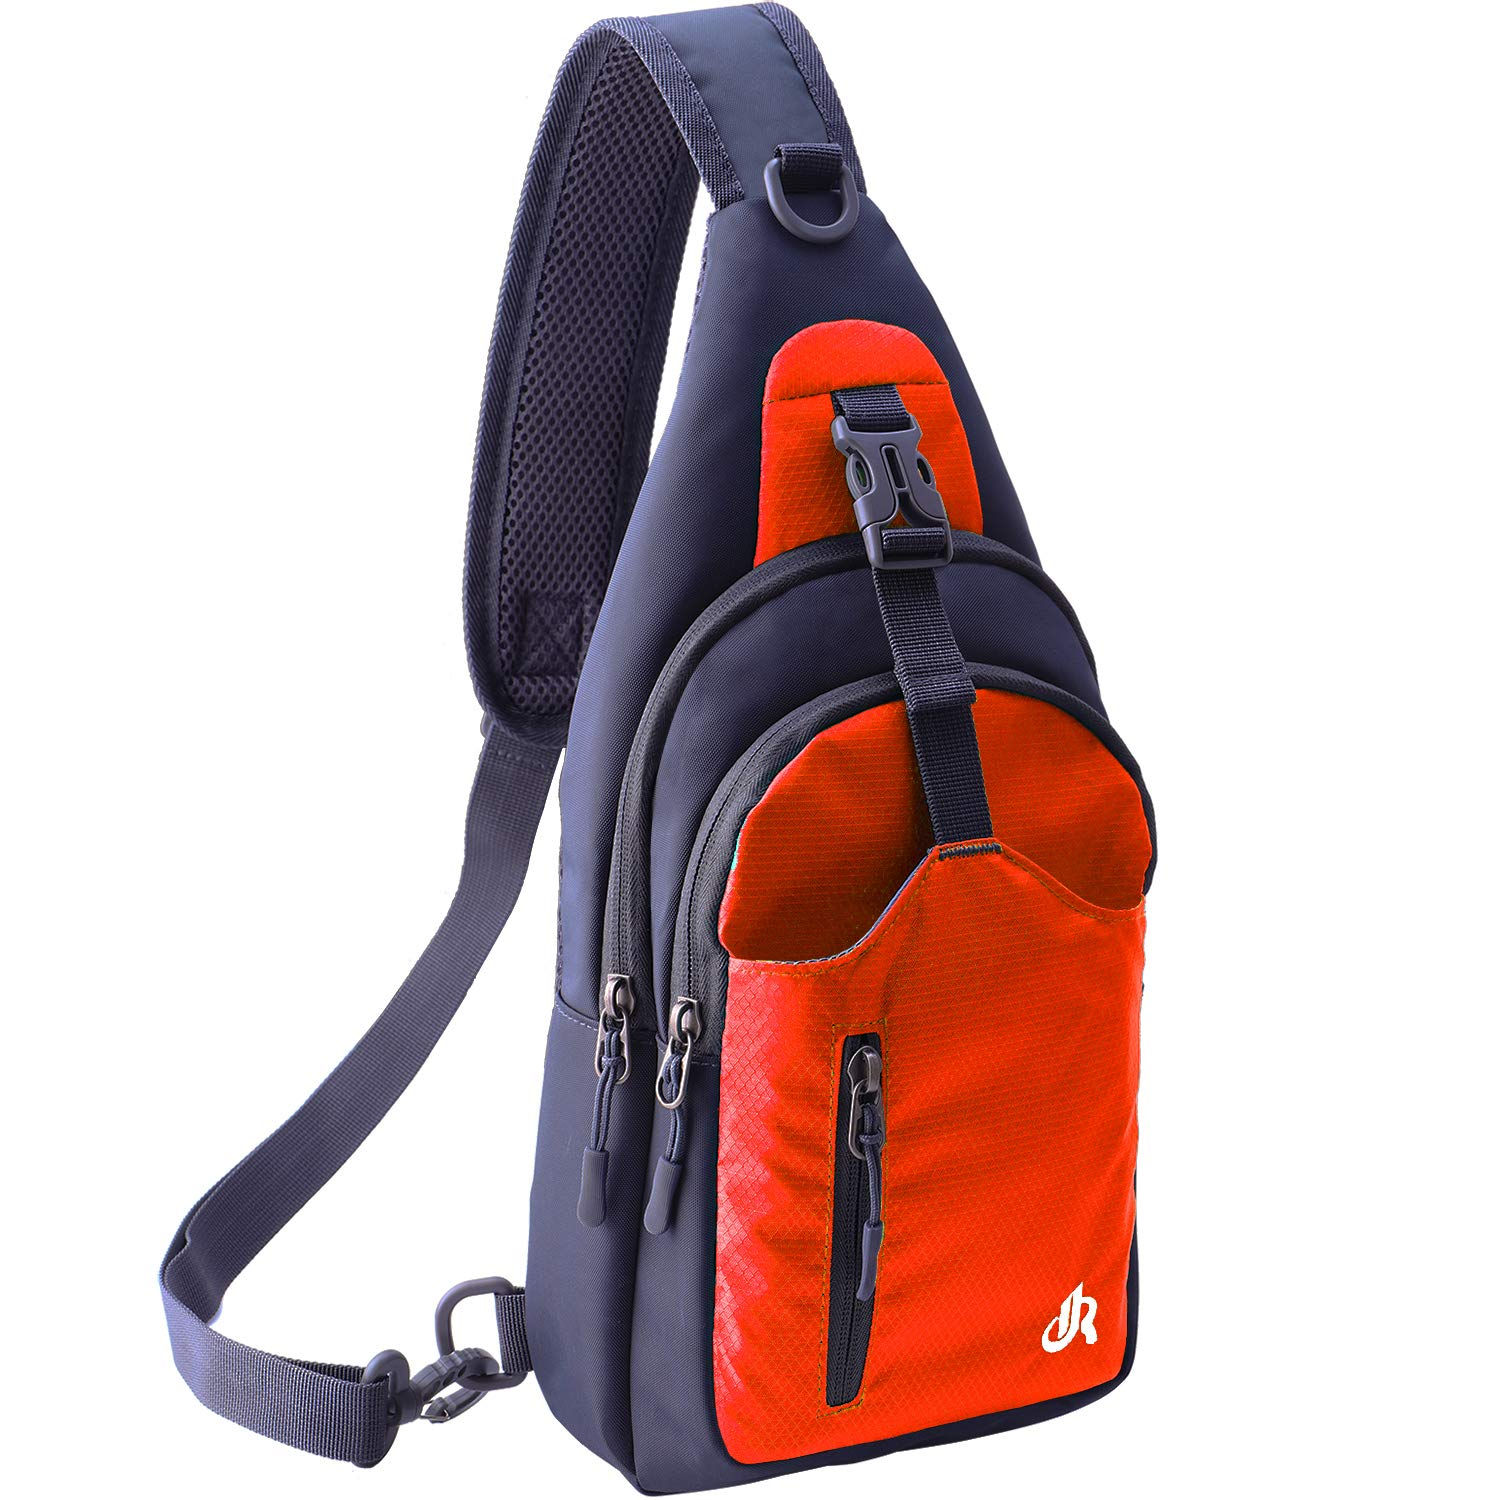 Y&R Direct Sling Bag Backpack Crossbody Bag Small Crossbody Purse for Men Women Hiking Camping (OrangeRed)